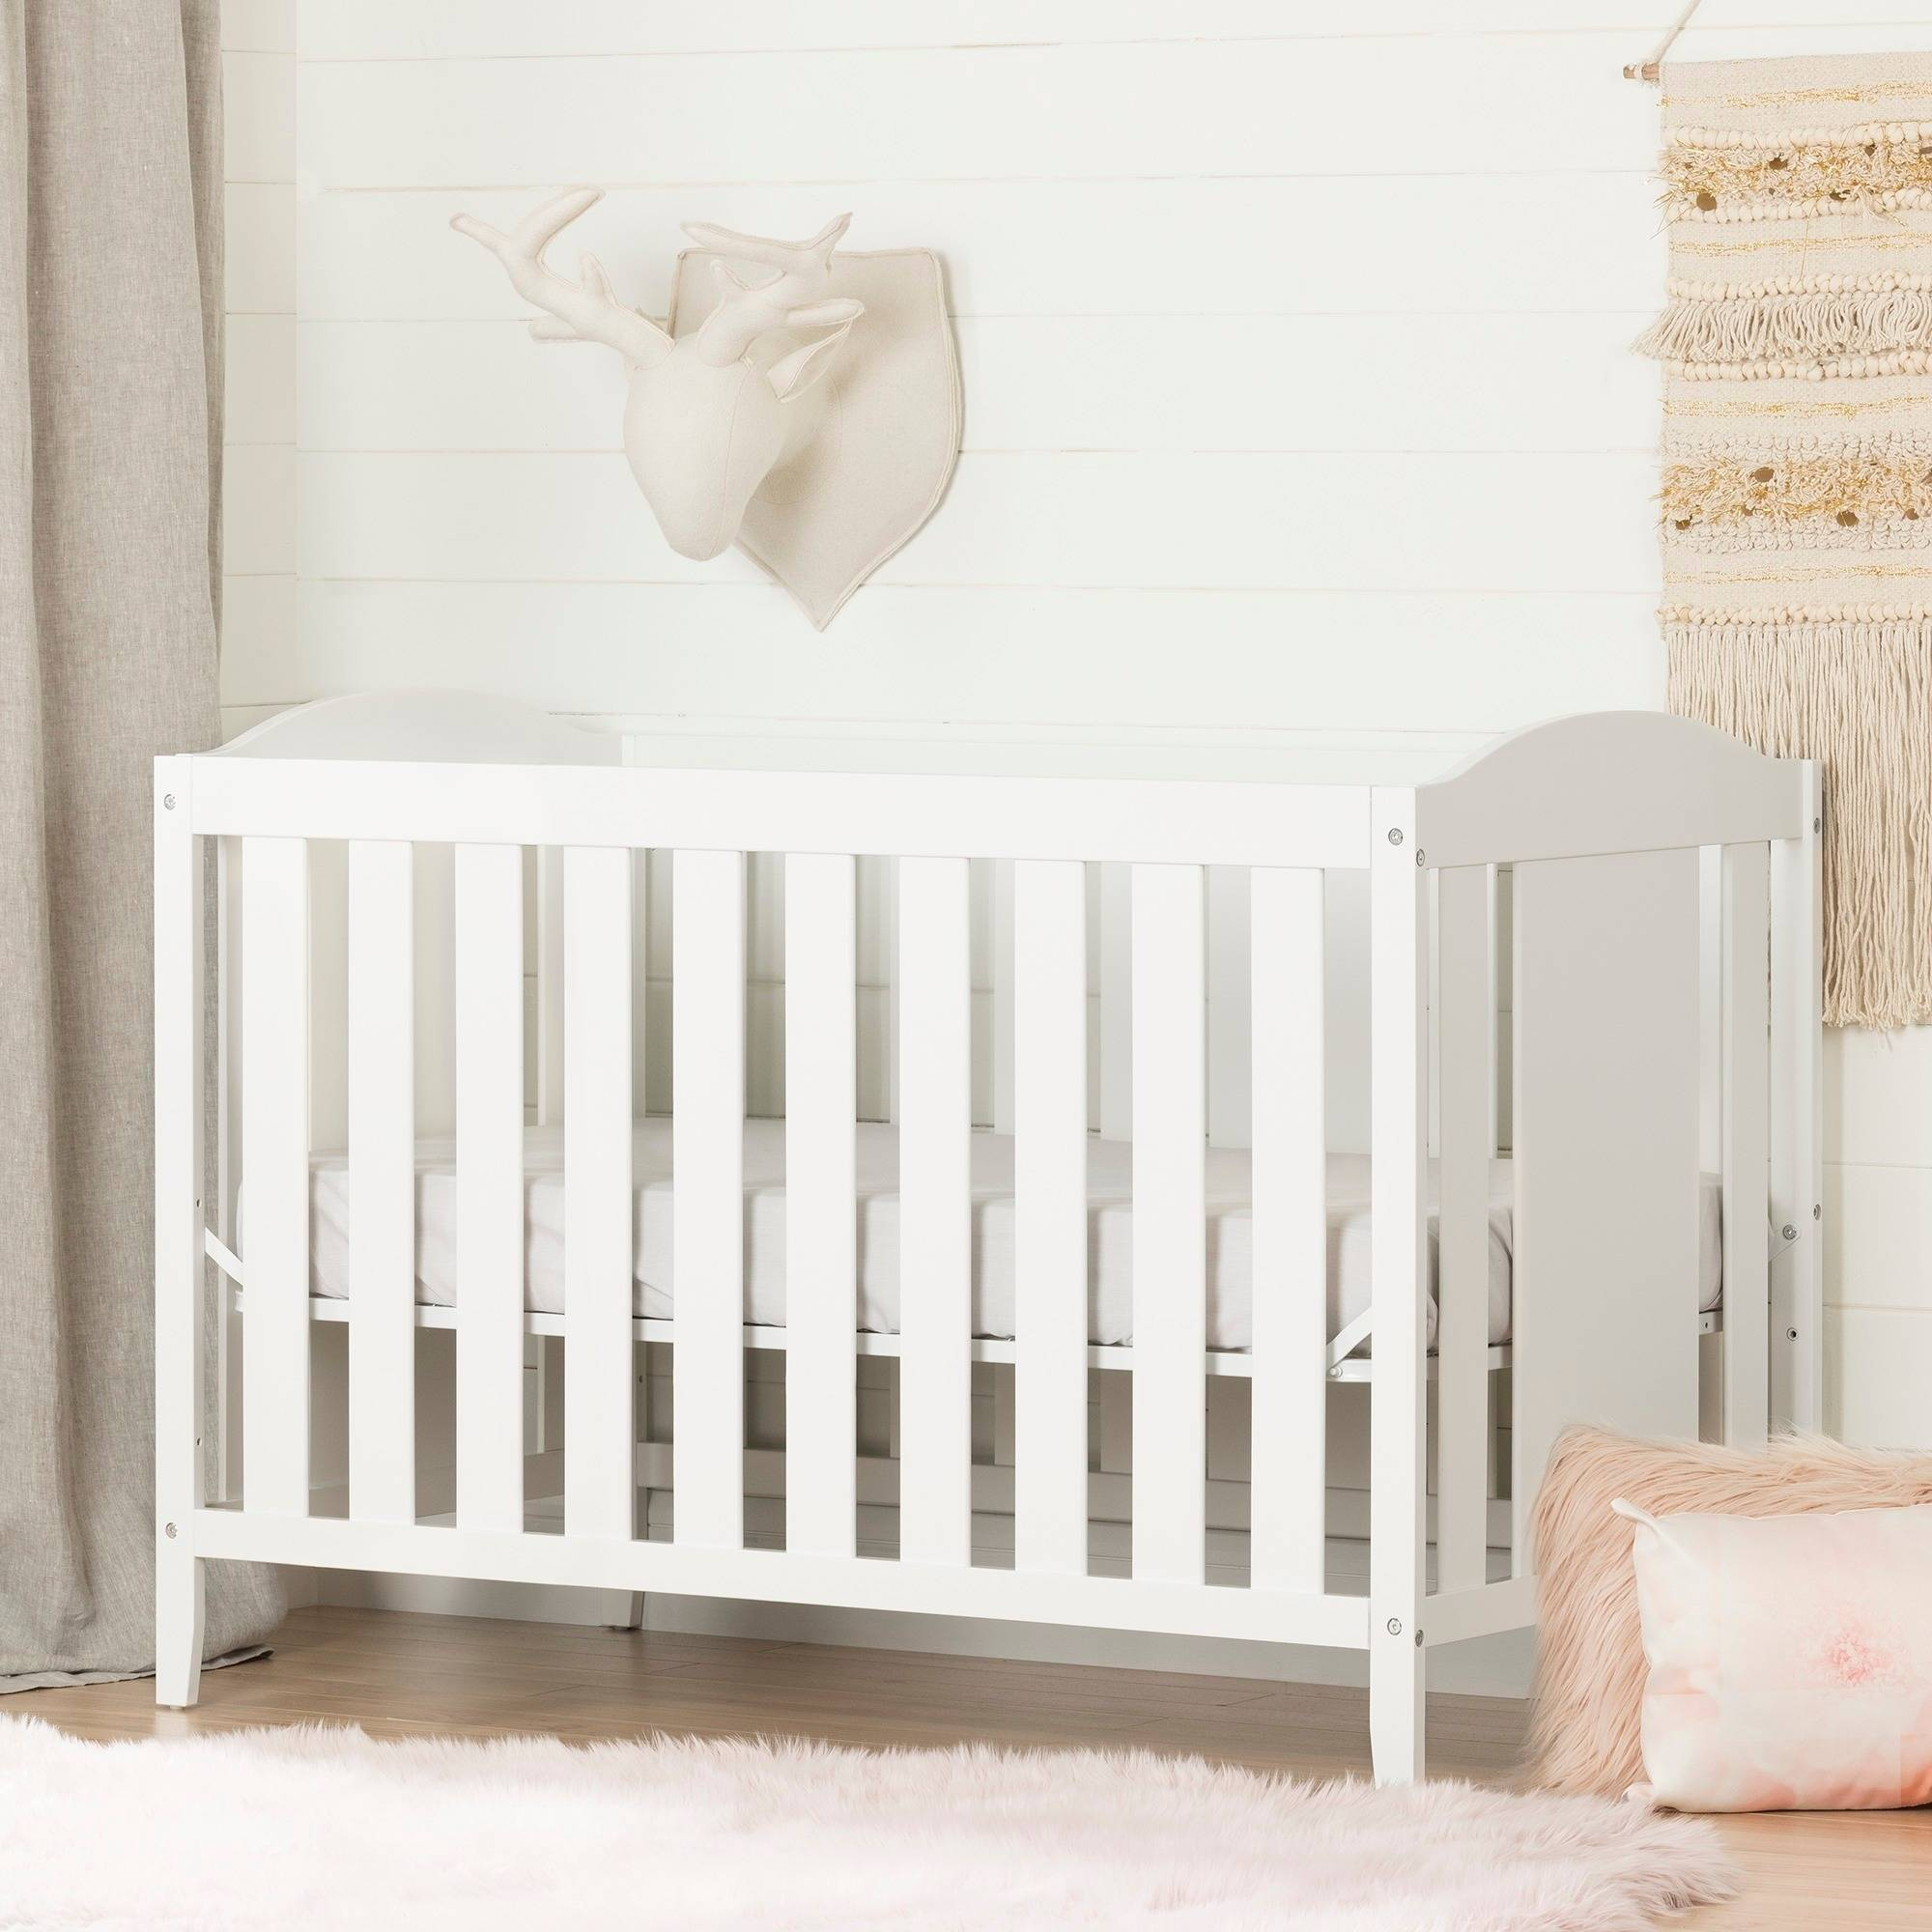 South Shore Angel 2-in-1 Convertible Crib, Multiple Finishes